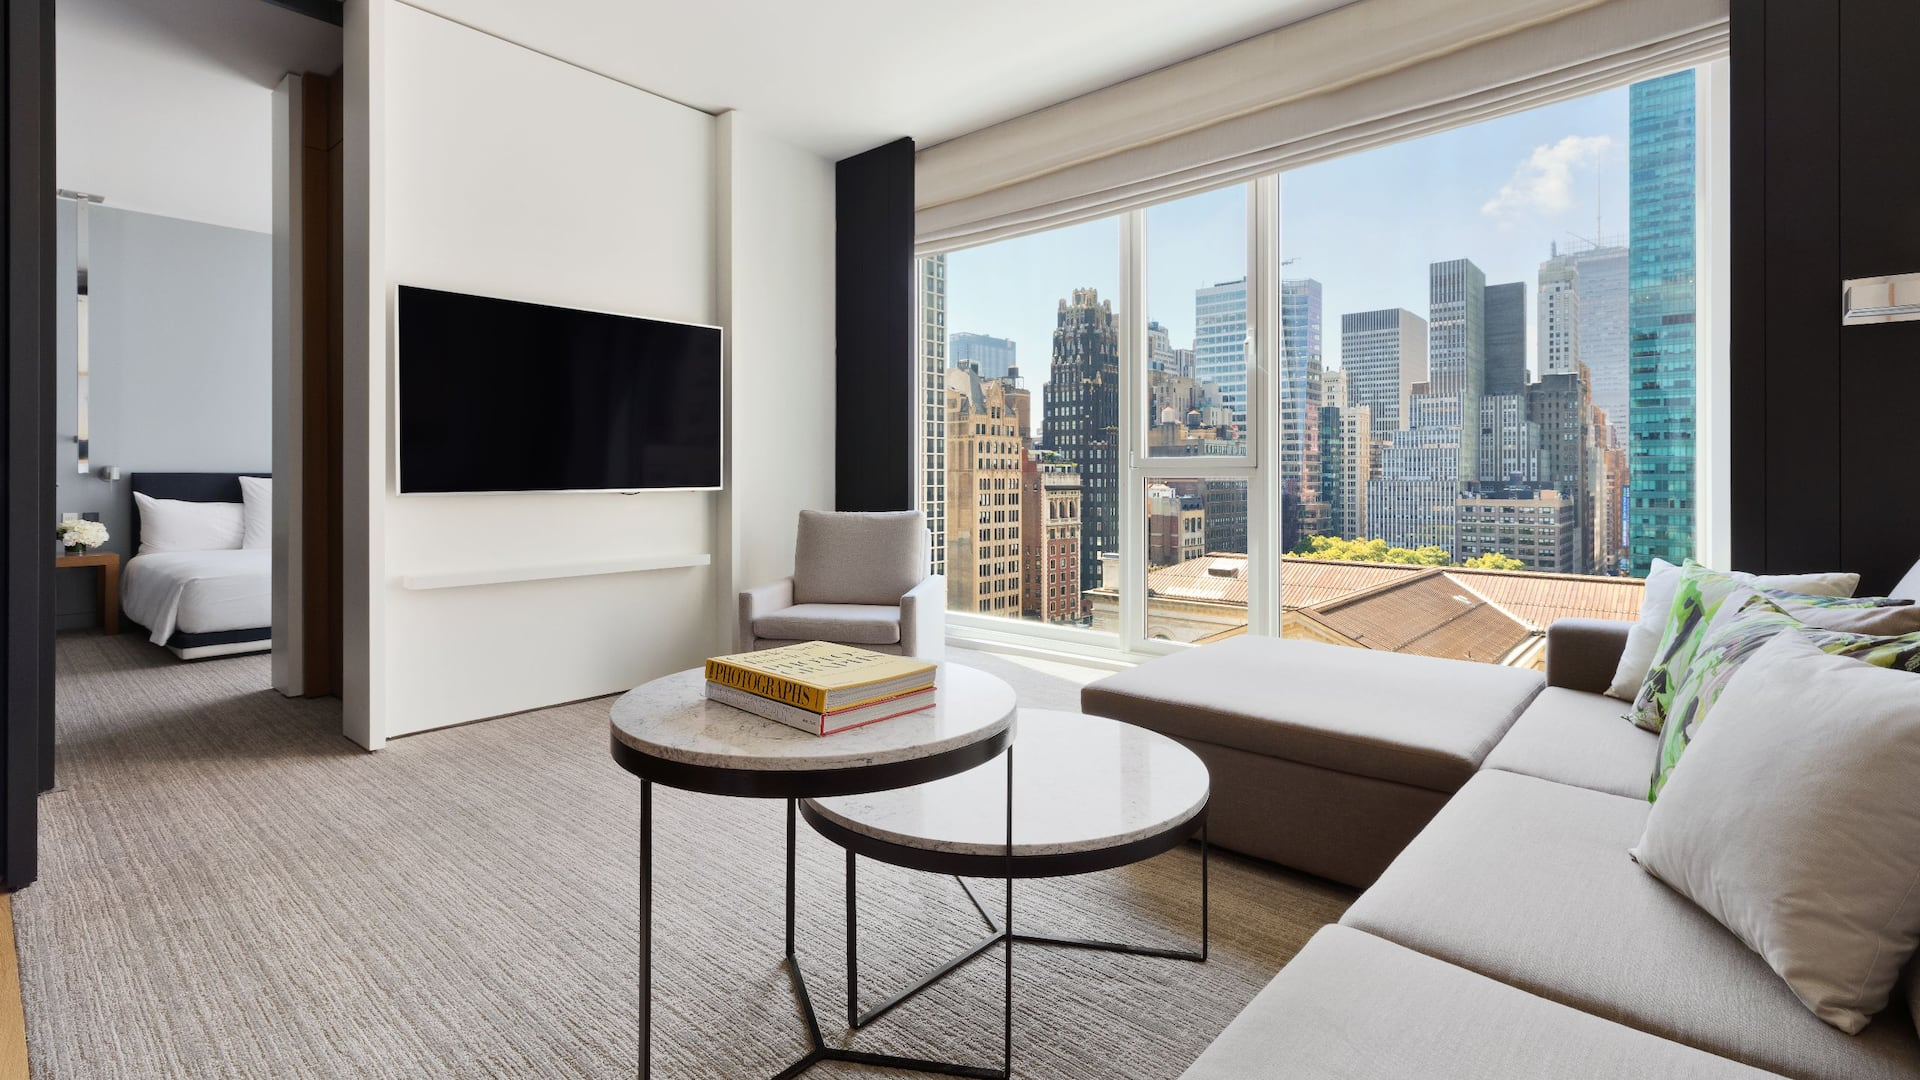 Andaz 5th Avenue Room View